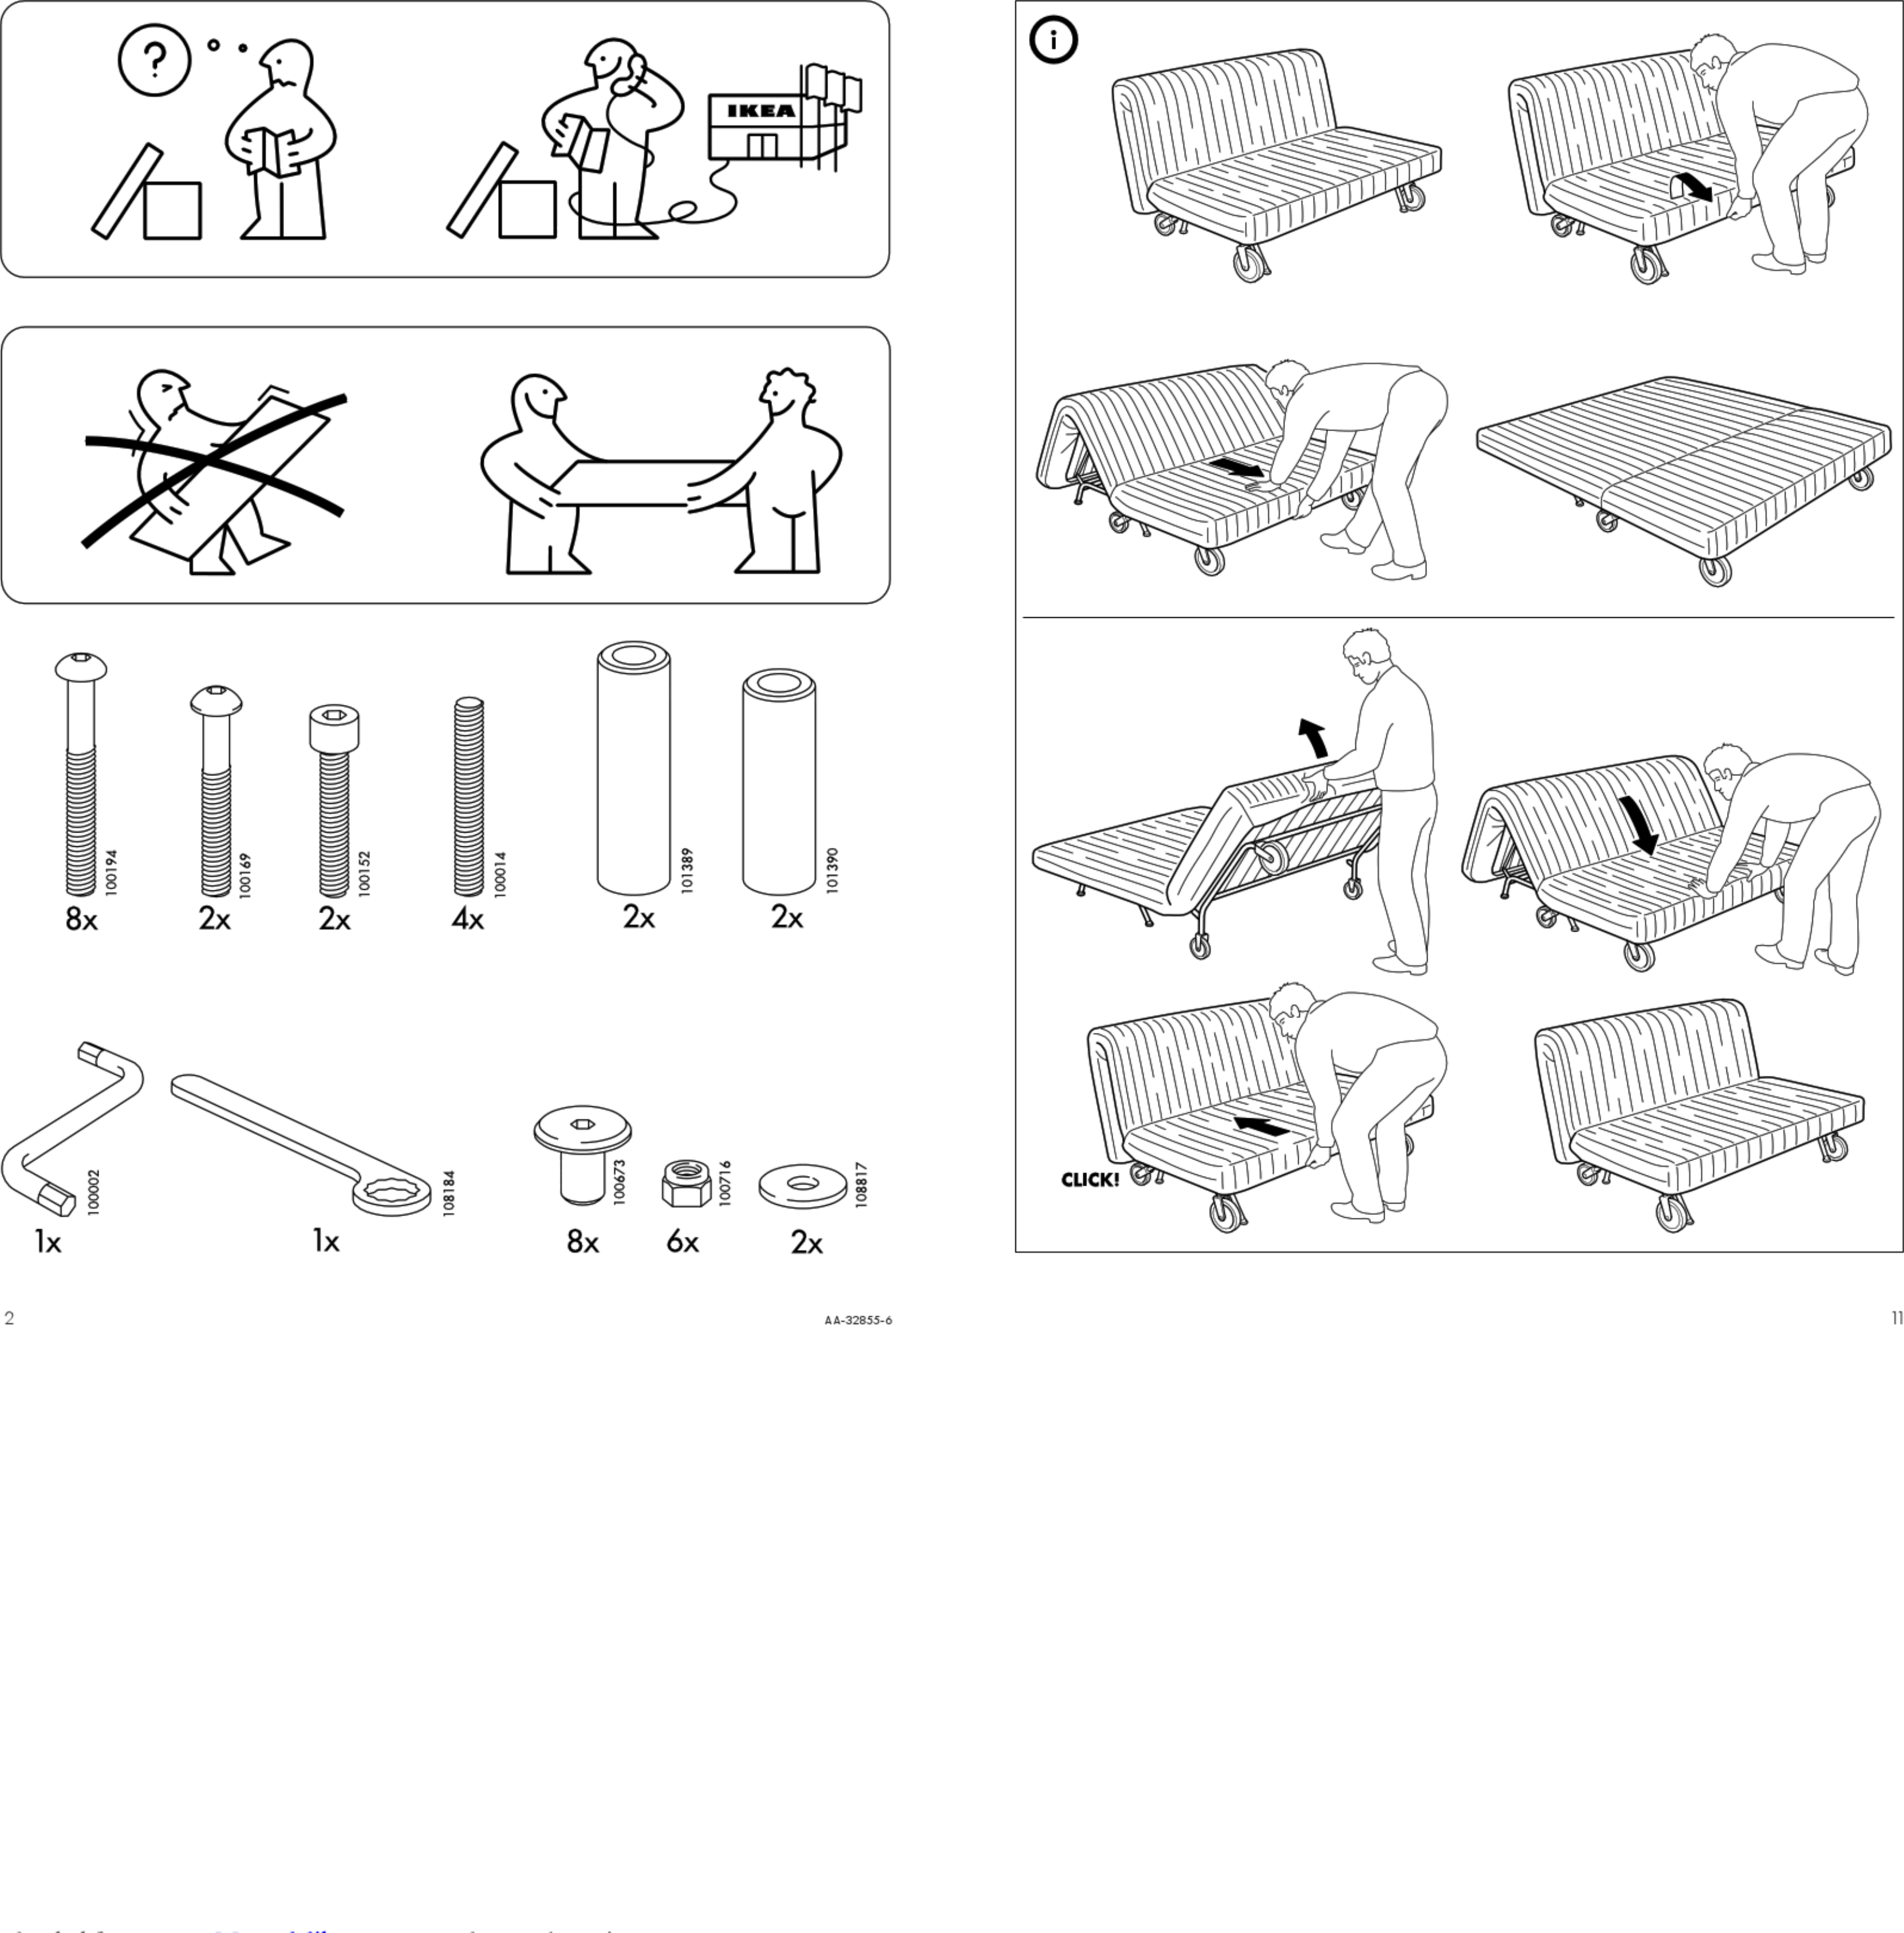 Hospital Bed Manual Guide